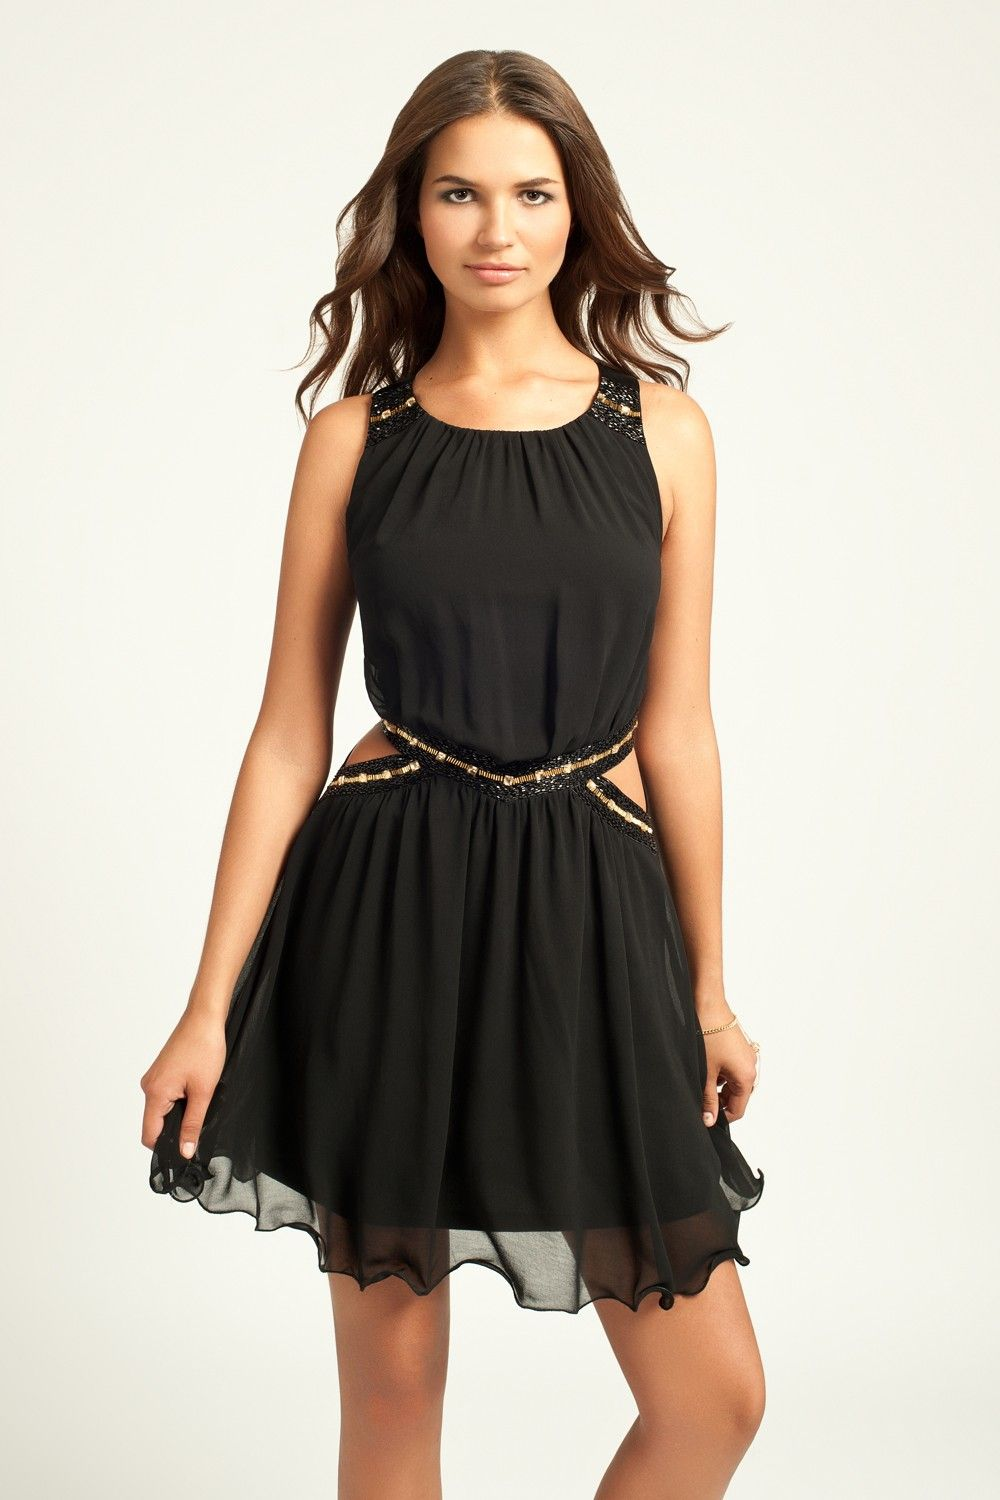 Black cutout detail with crossover back dress littlemistress